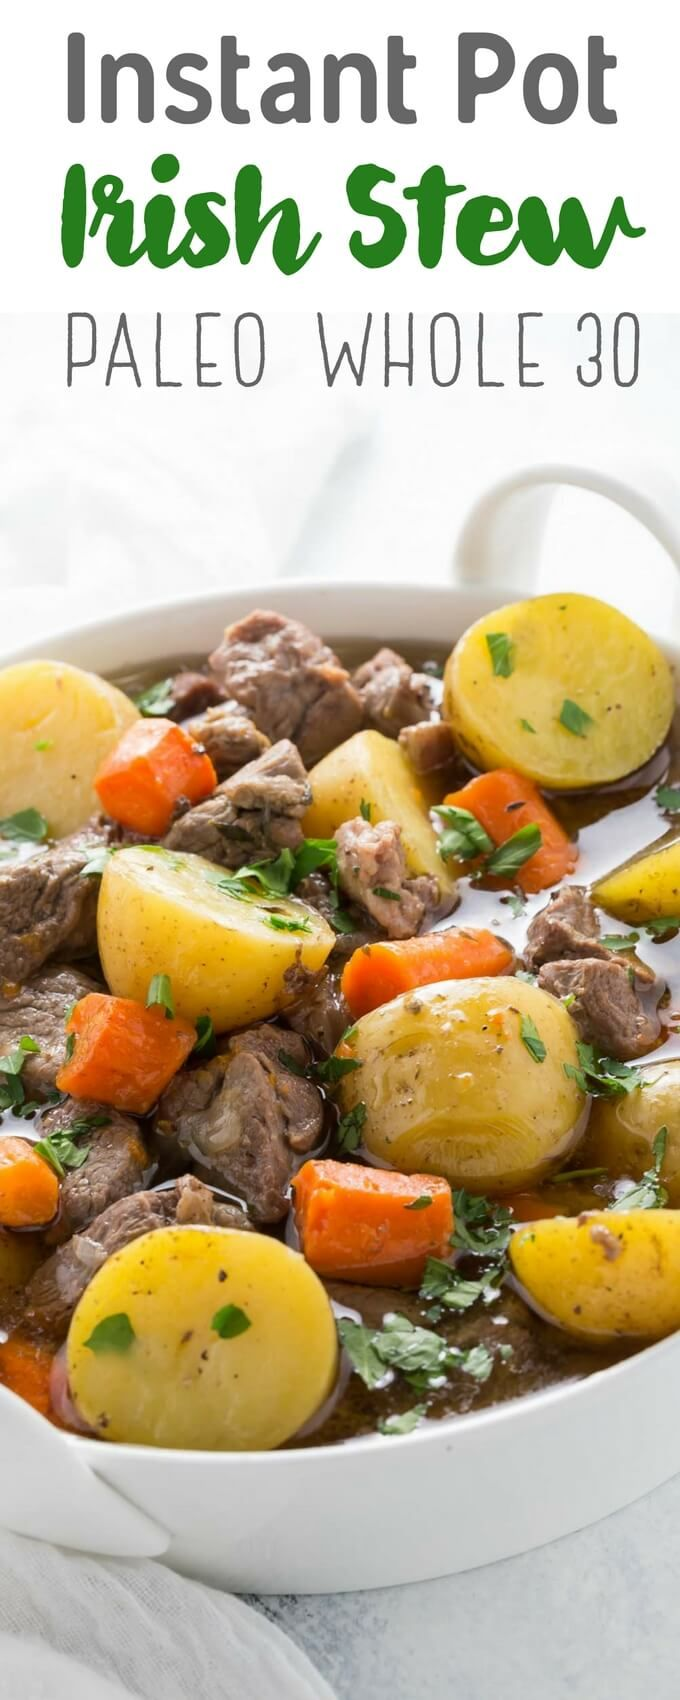 Pressure cooker Irish stew is an adaptation of a classic recipe with lamb, potatoes, carrots and herbs. It's gluten free, paleo and whole30, perfect for your Instant Pot or other electric pressure cooker. A great St Patricks' Day recipe too.